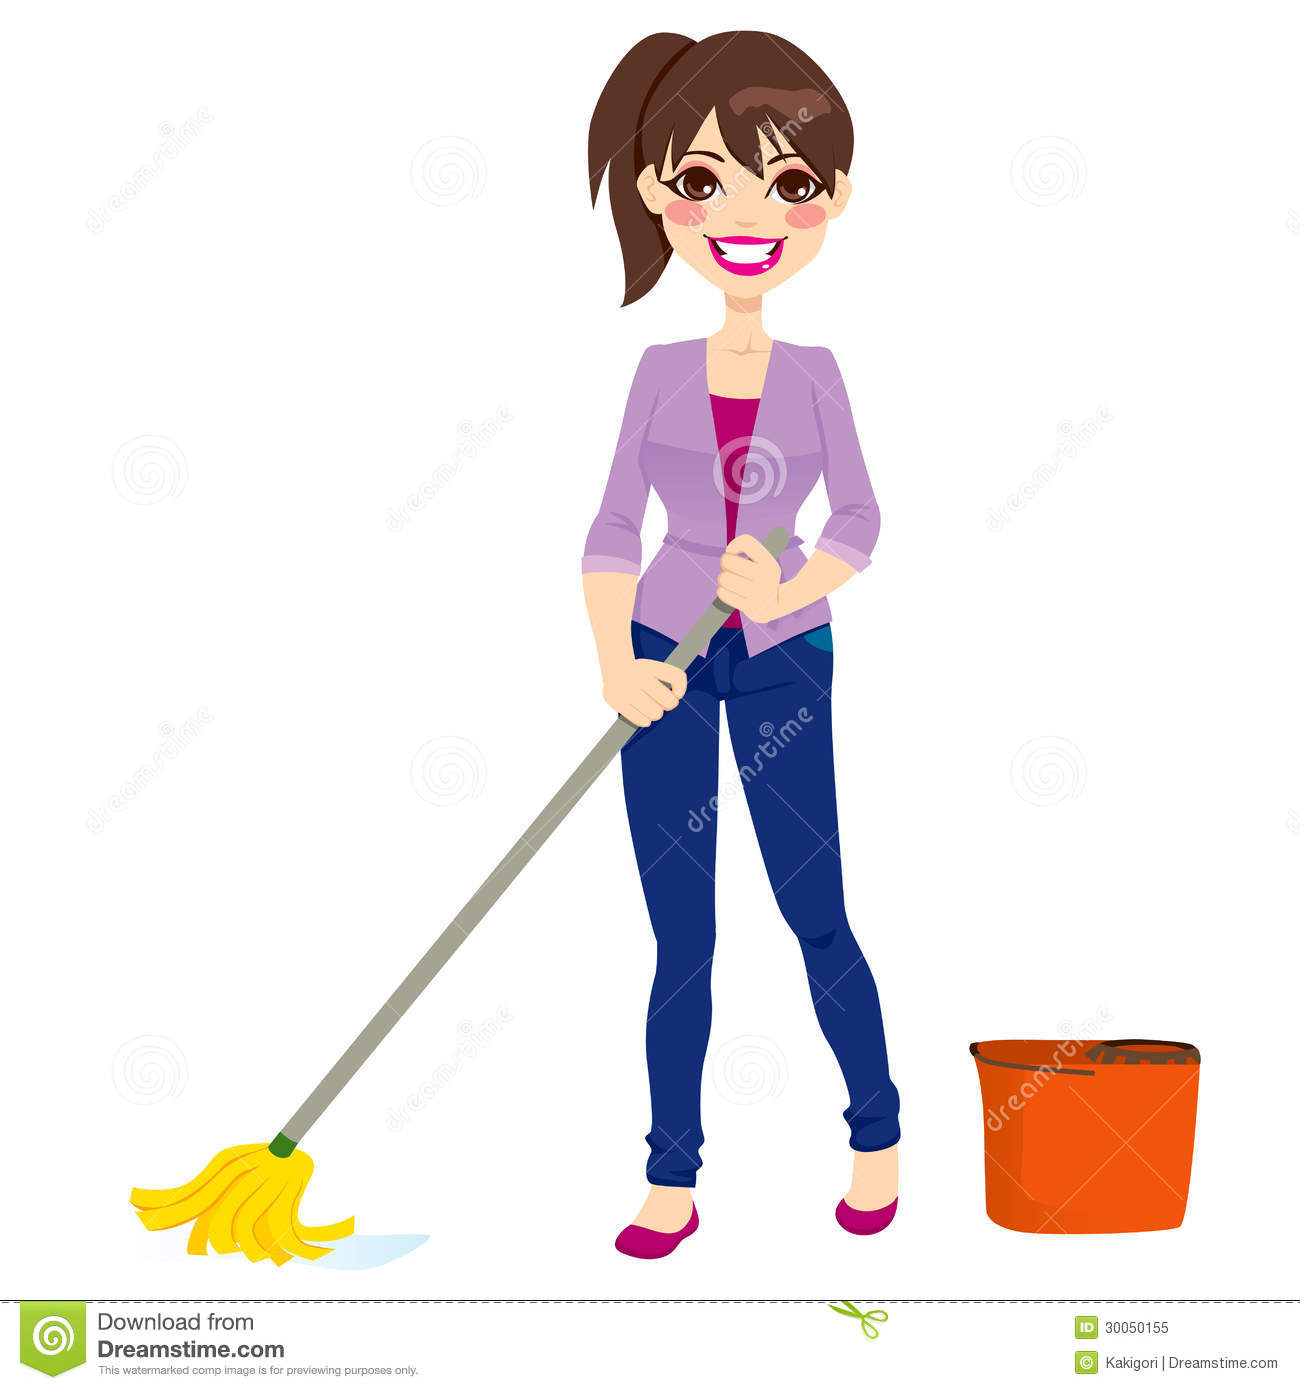 Woman Cleaning Floor Royalty Free Stock Photo - Image: 30050155